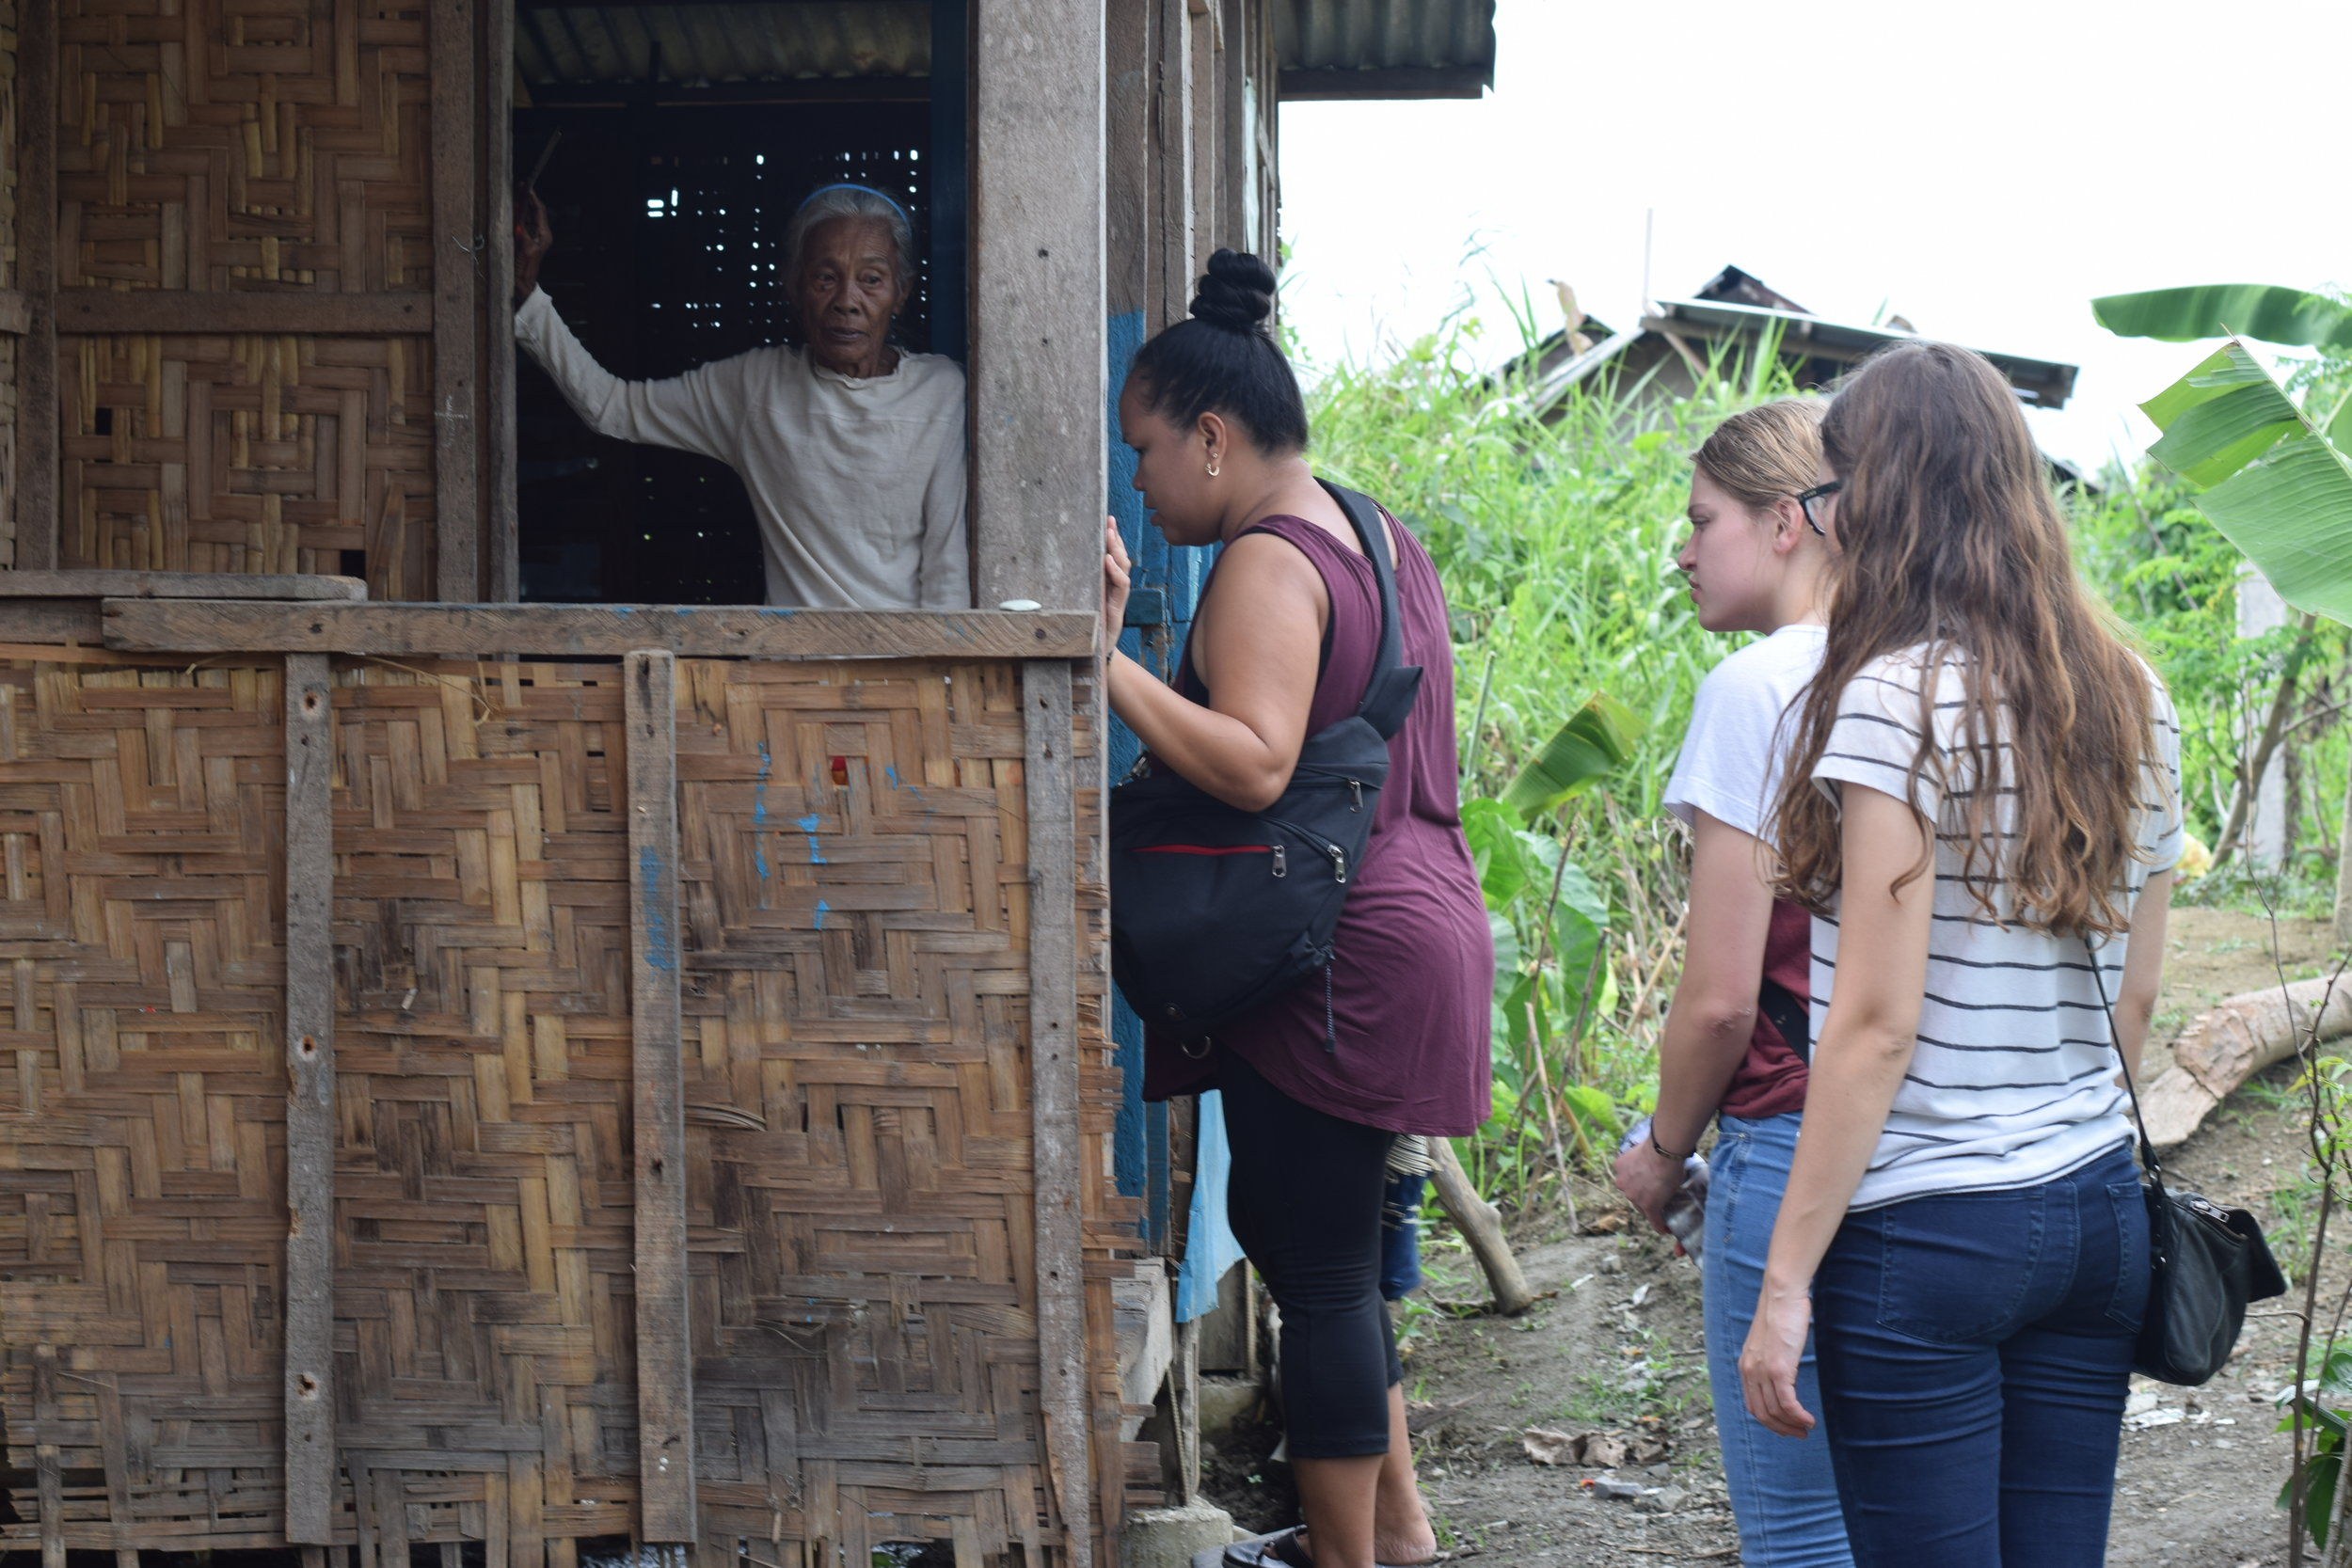 Many elderly people who live in the rural Philippines have little to no access to proper health care. Unless someone visits them, or a family member lives nearby, their condition often deteriorates very quickly due to isolation and lack of care.